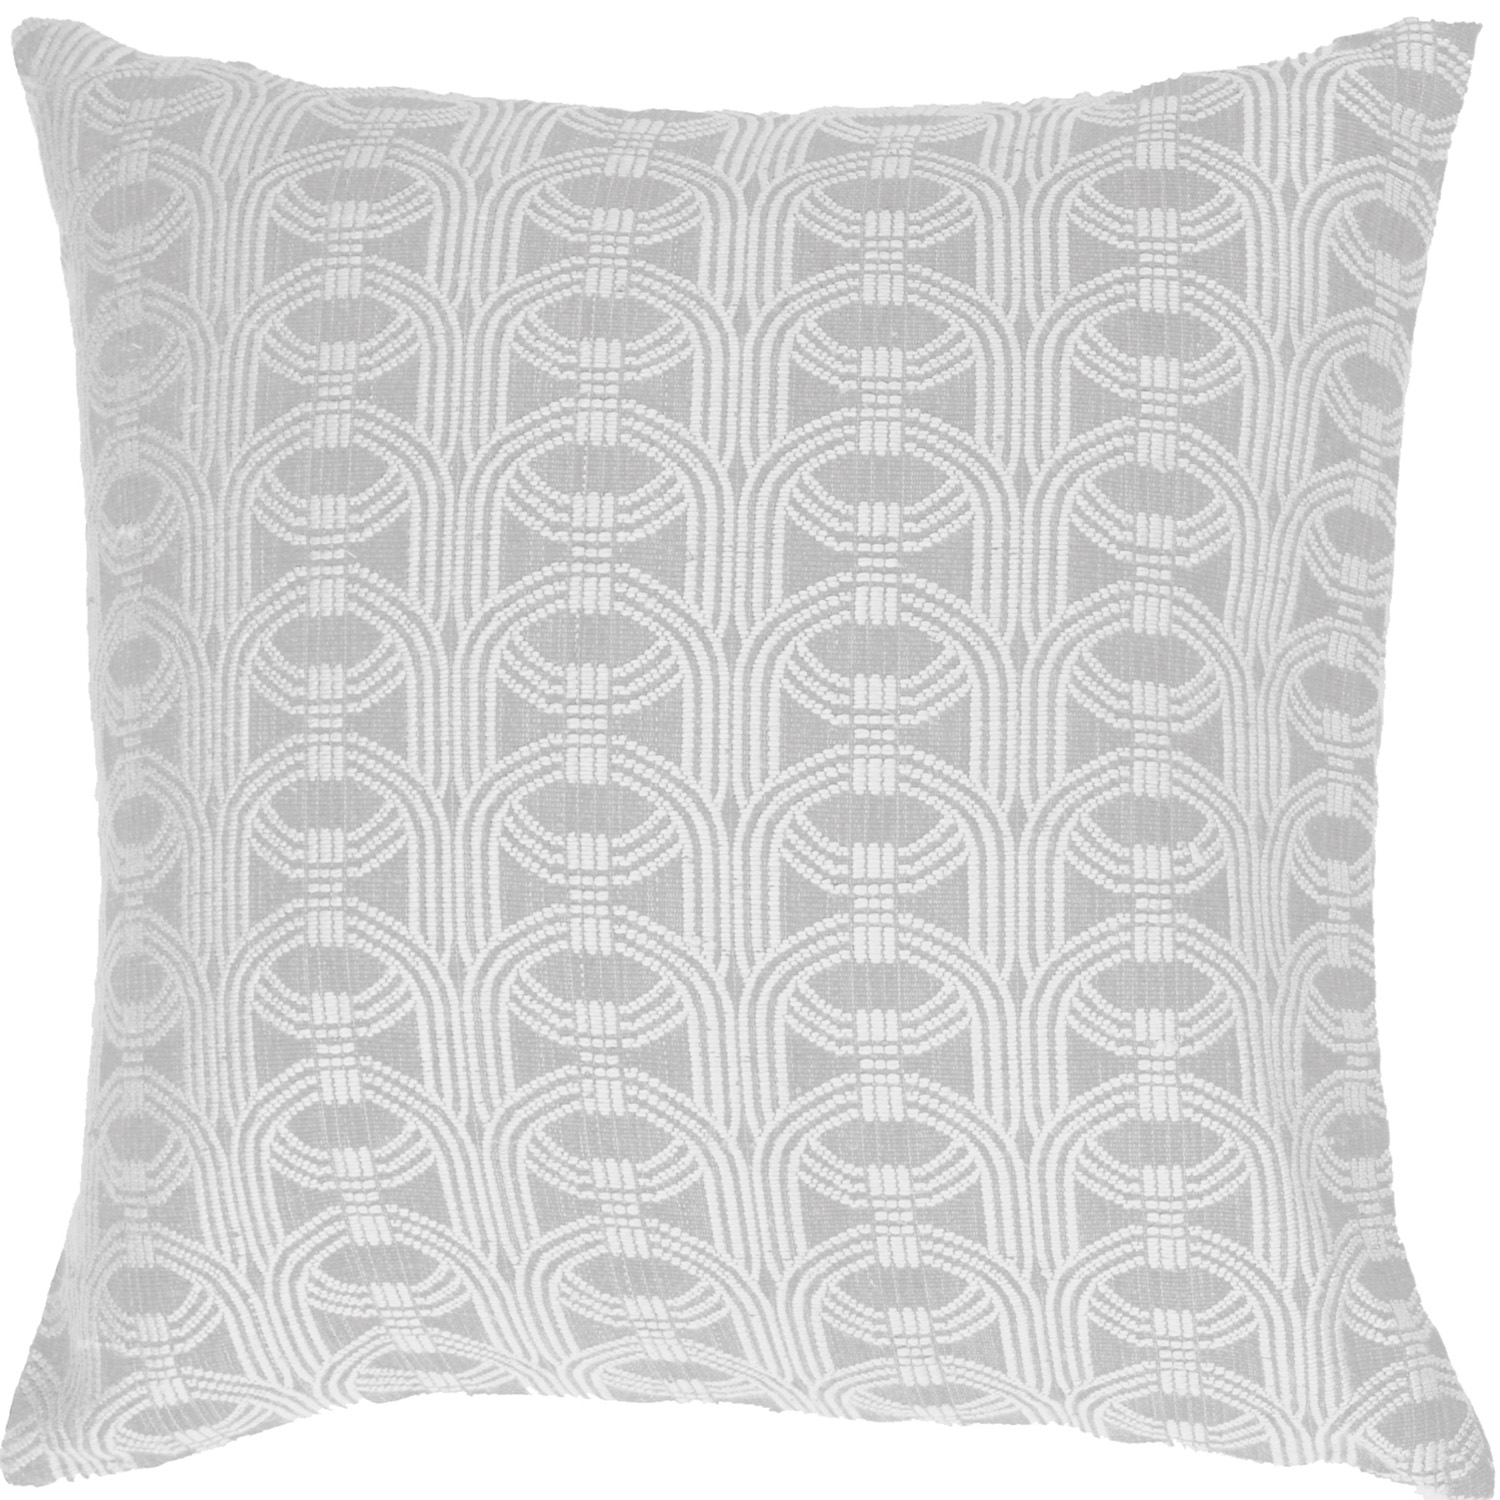 Barrel-weave Ice Euro cushion, bandhini.com.au